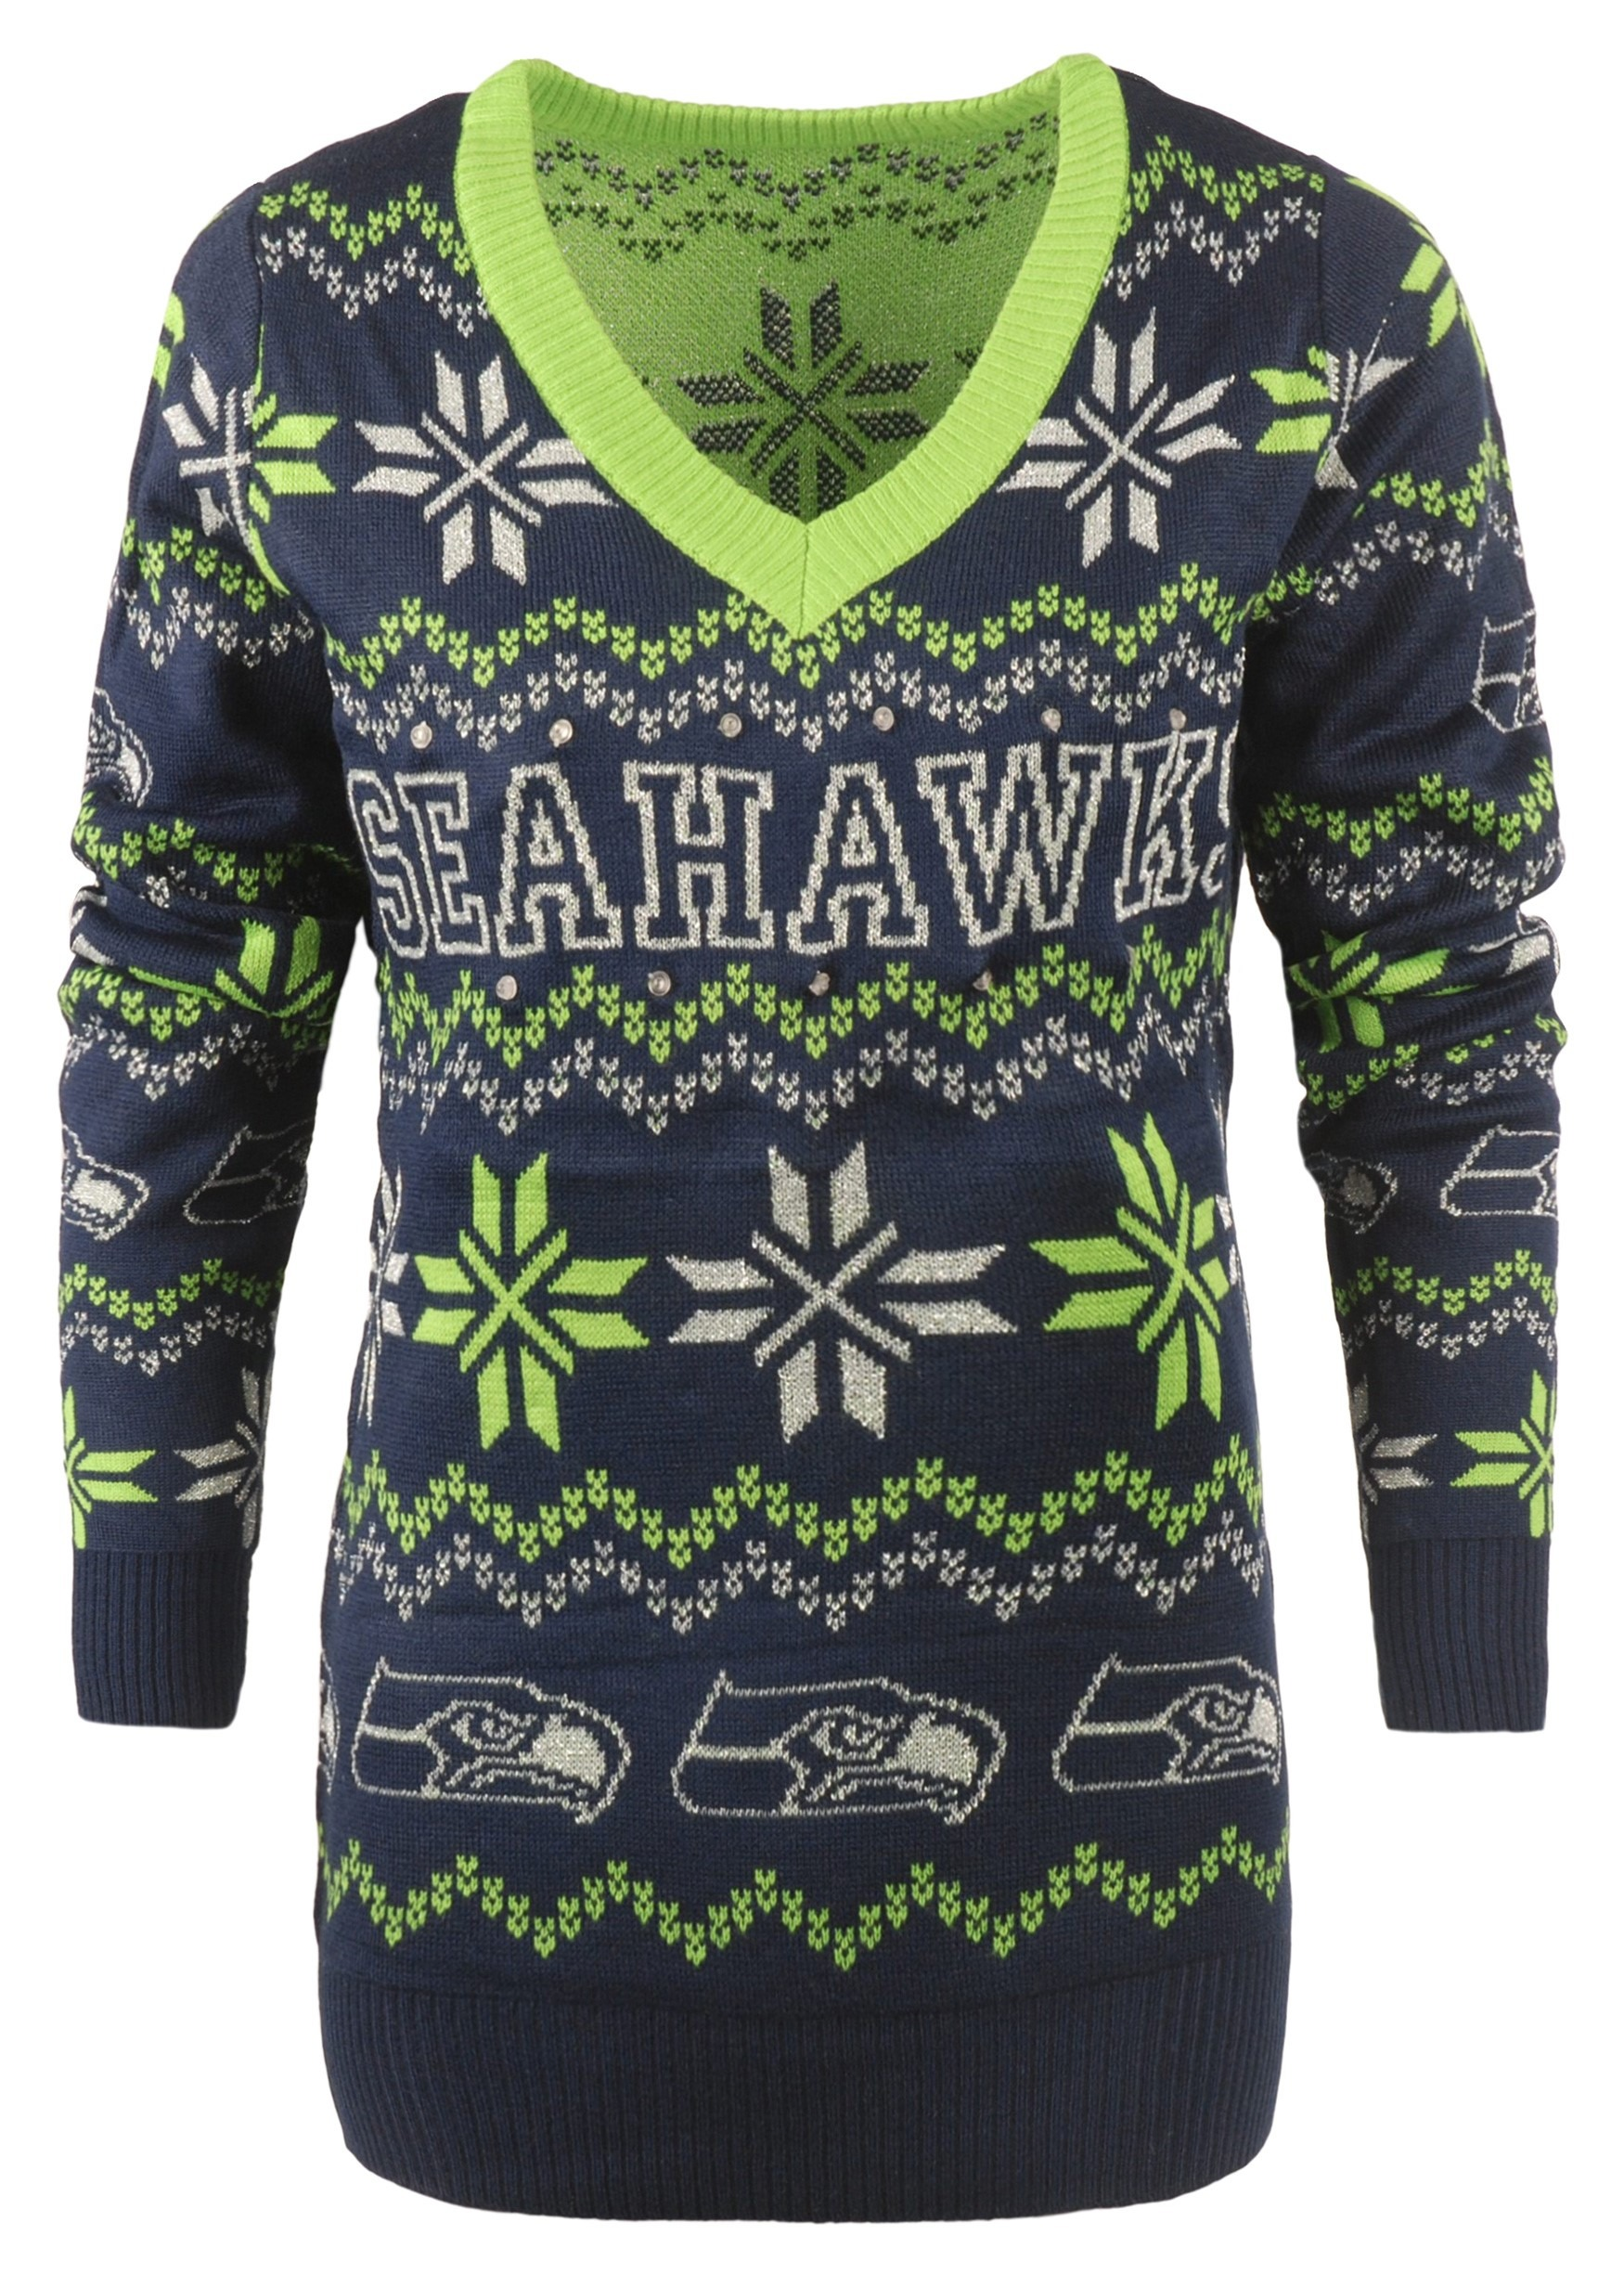 official photos 76839 c3388 Seattle Seahawks Women's Light Up V-Neck Bluetooth Sweater